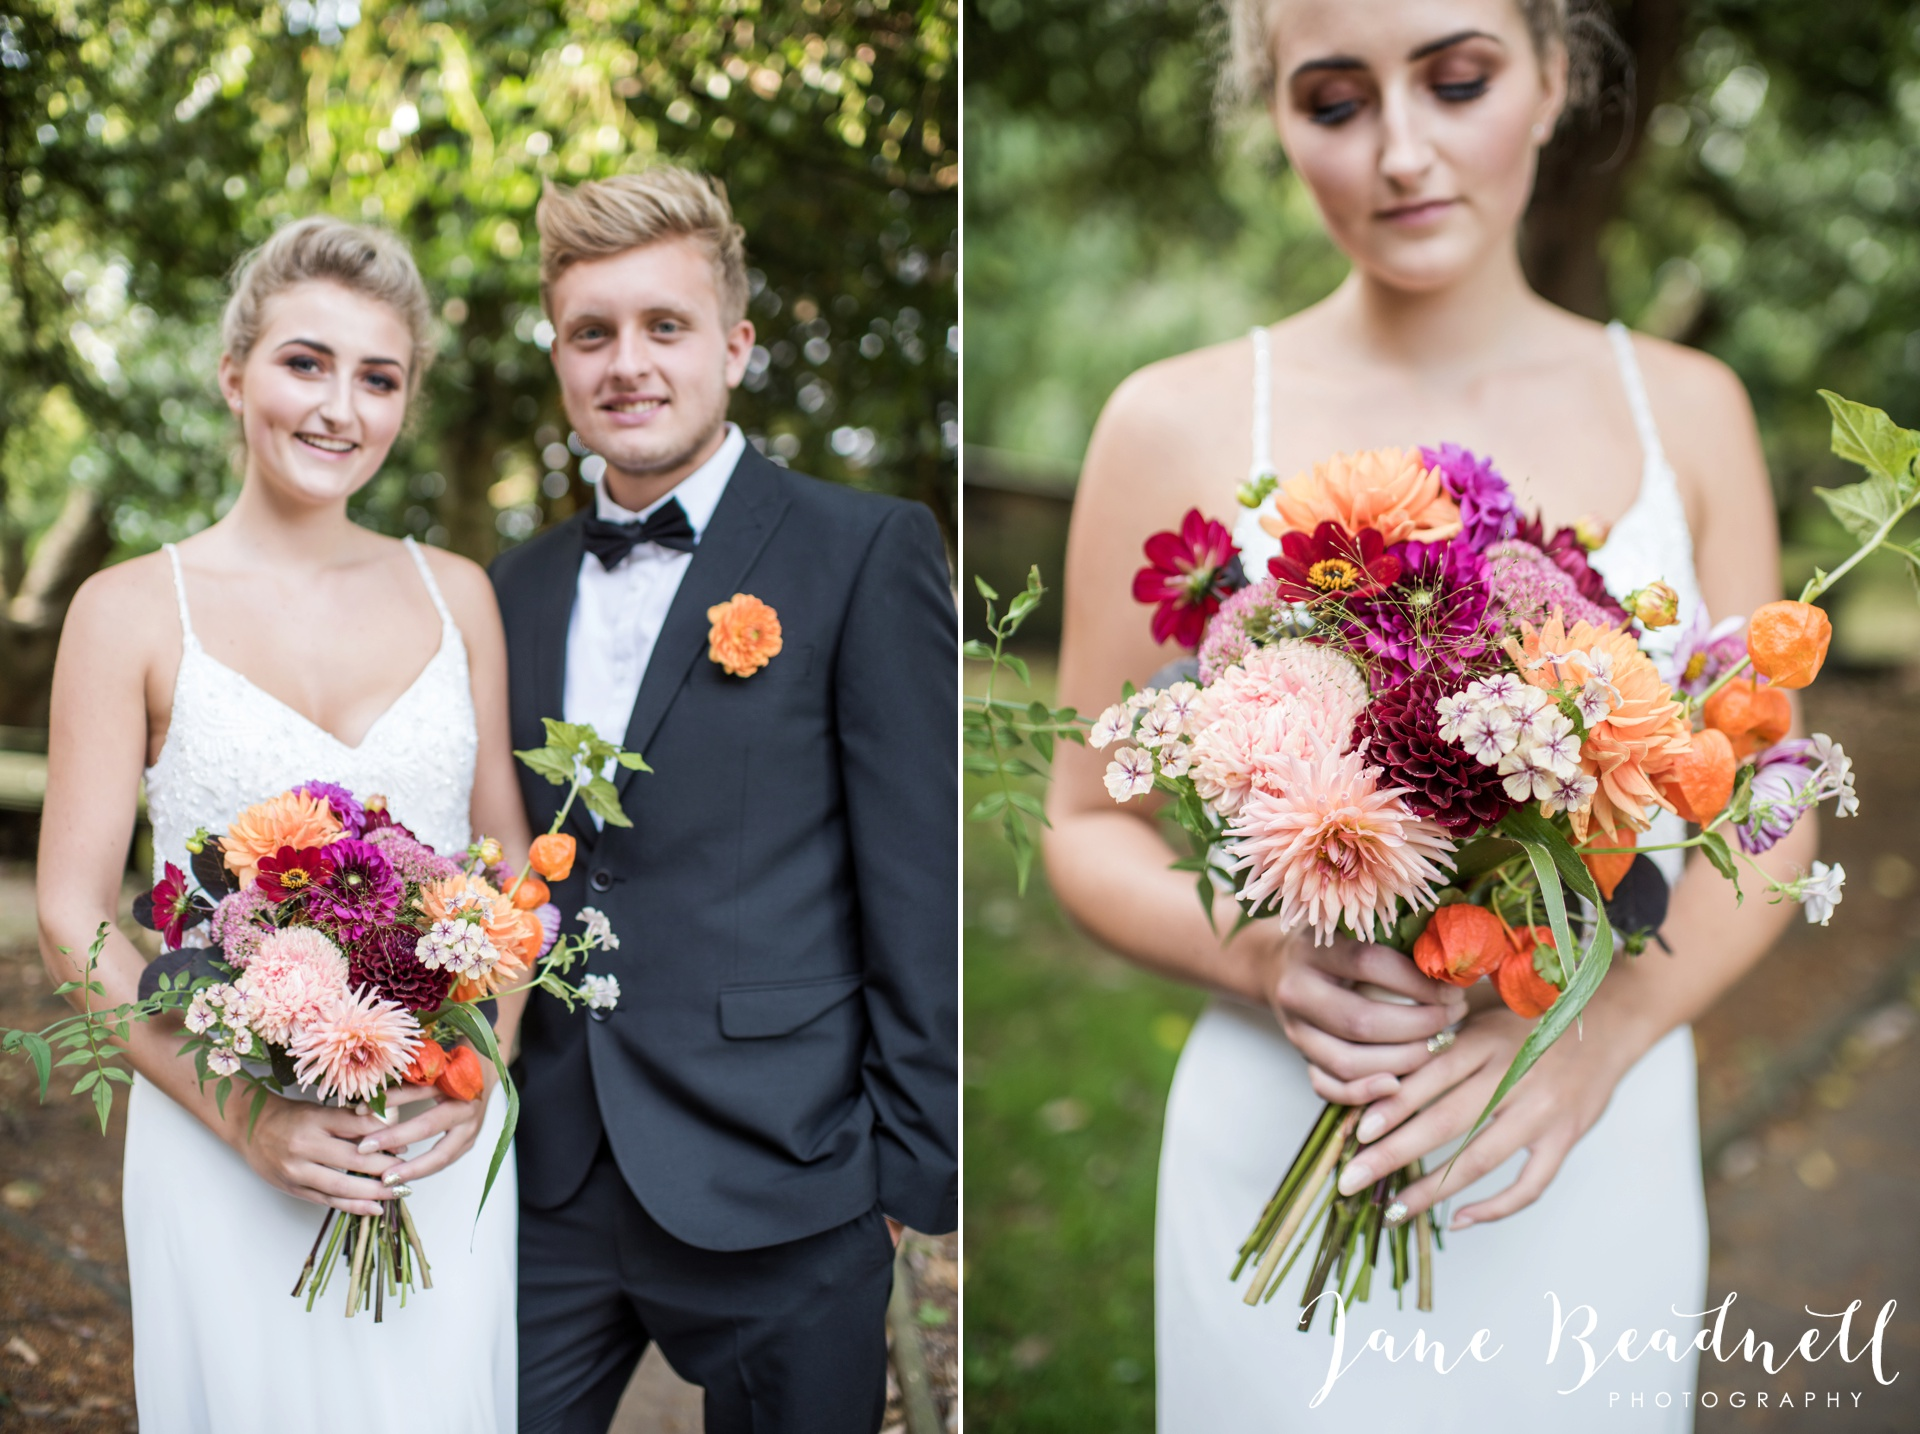 yorkshire-fine-art-wedding-photographer-jane-beadnell-photography-with-leafy-couture-wedding-flowers_0026